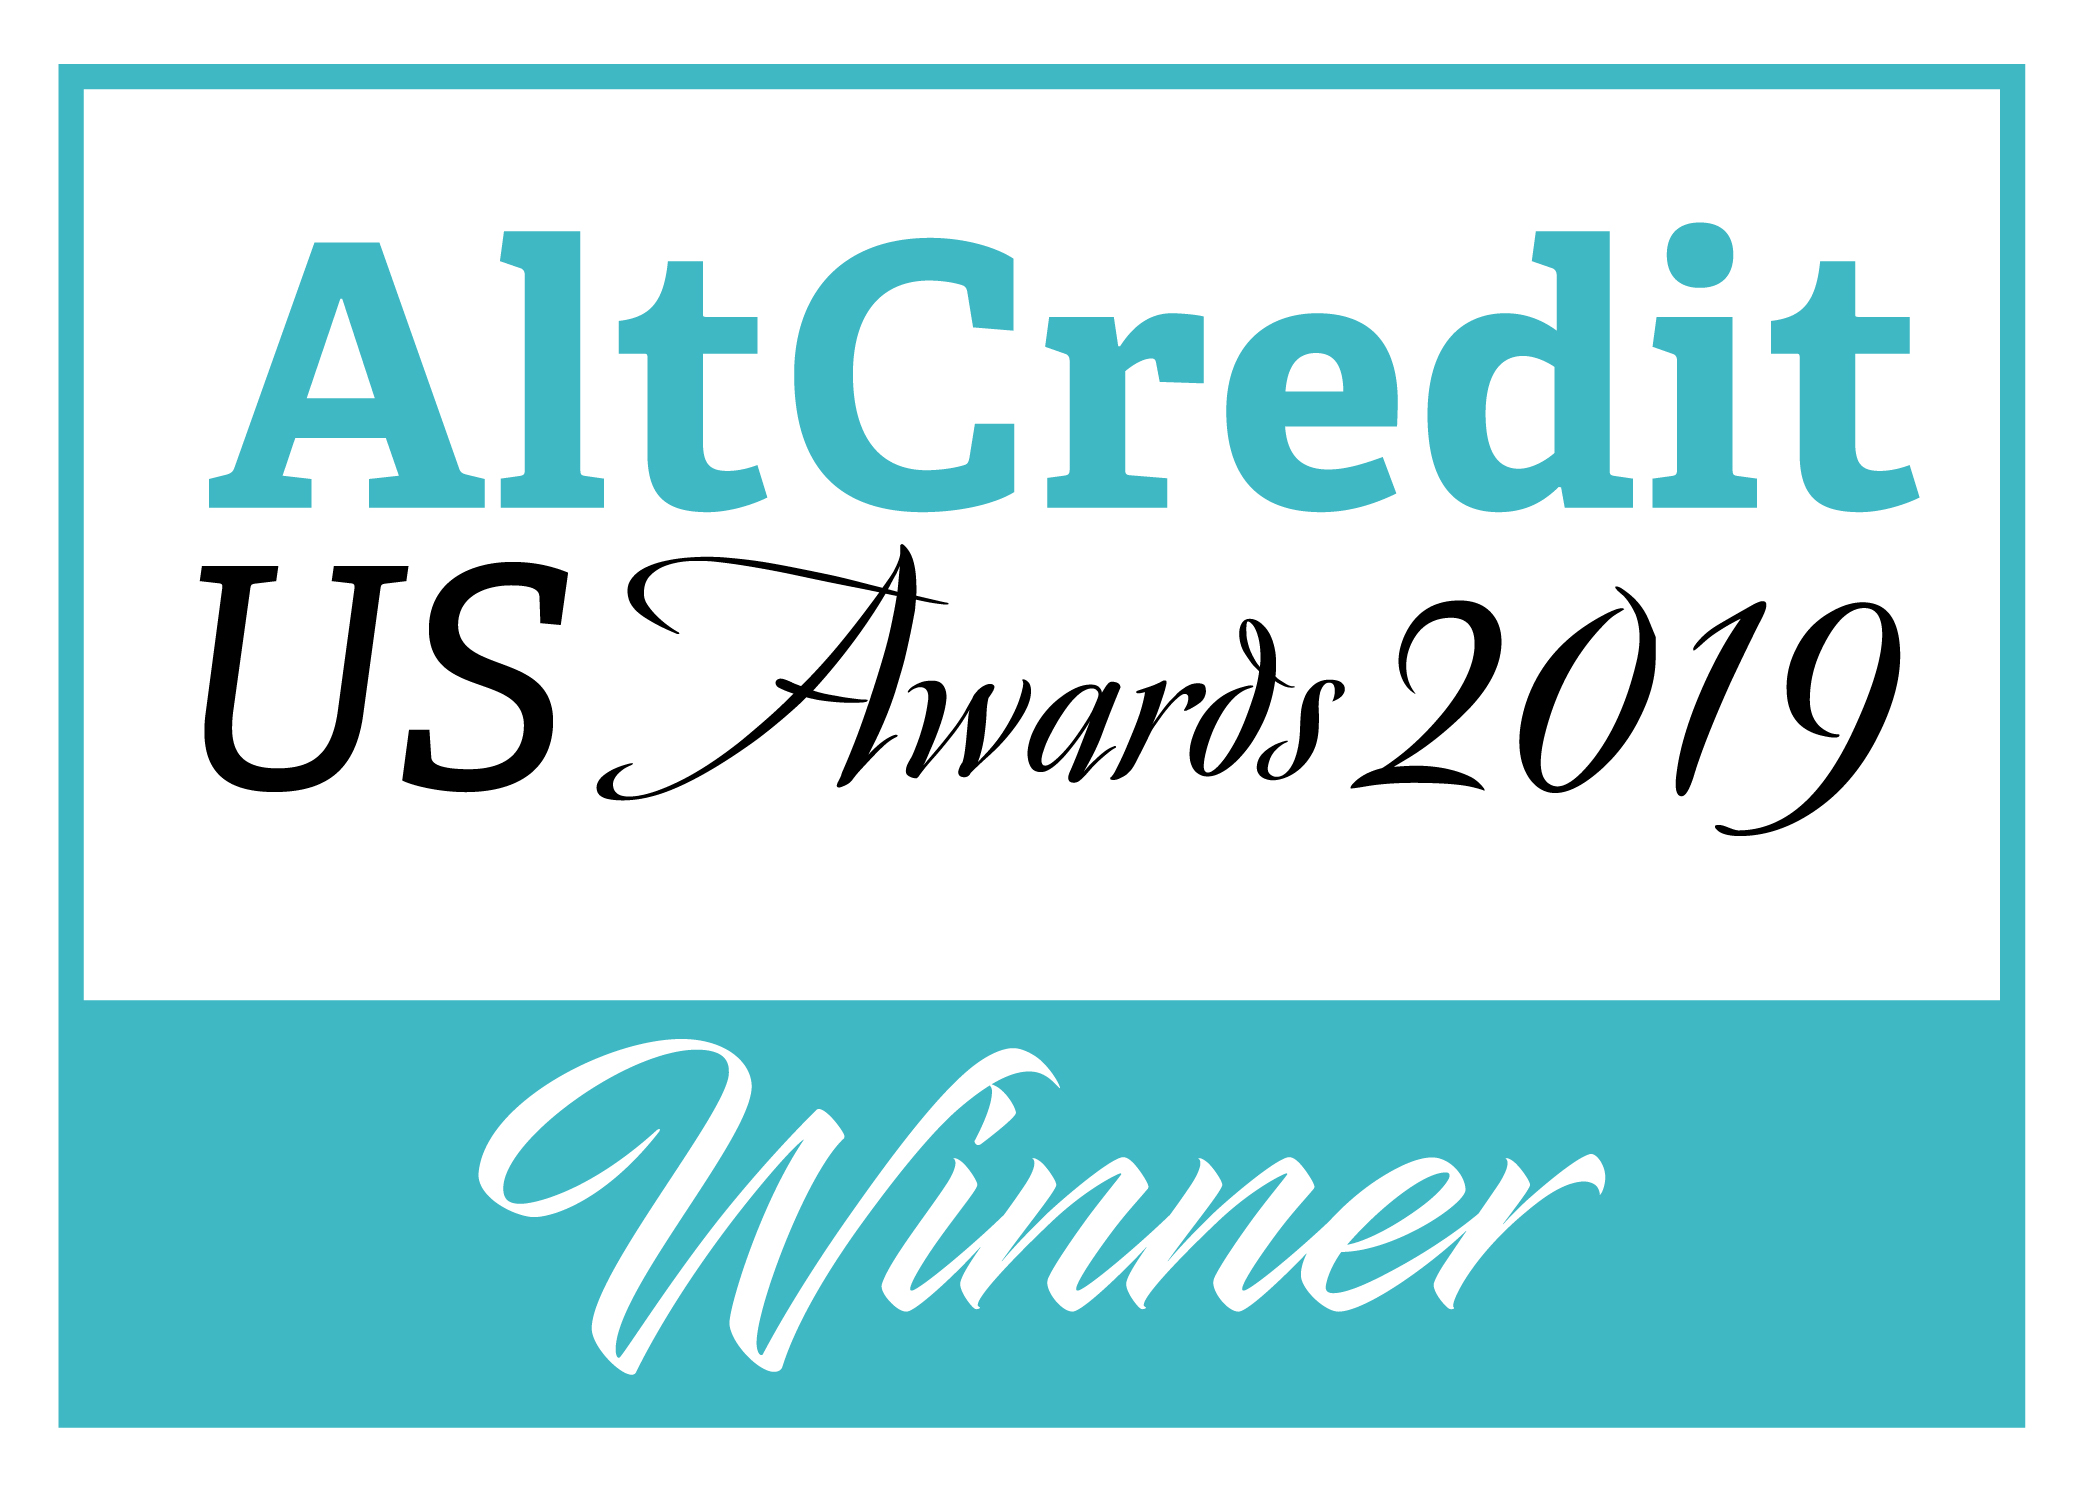 AltCredit US Awards Logo - Winner